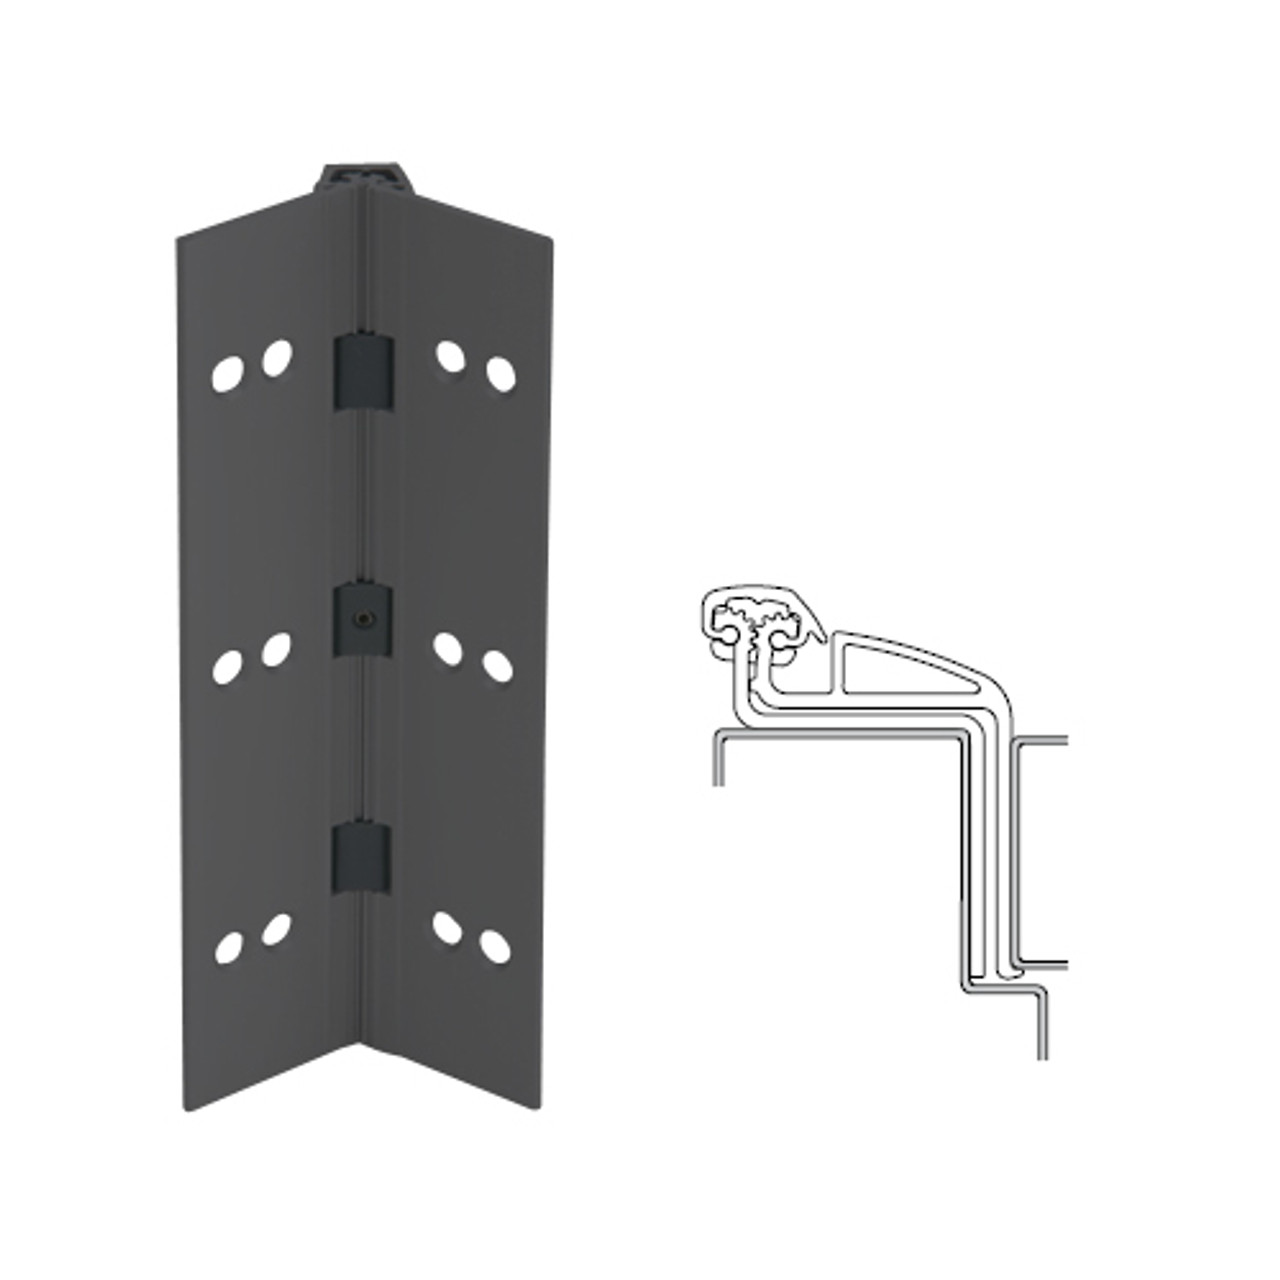 041XY-315AN-85-TEKWD IVES Full Mortise Continuous Geared Hinges with Wood Screws in Anodized Black